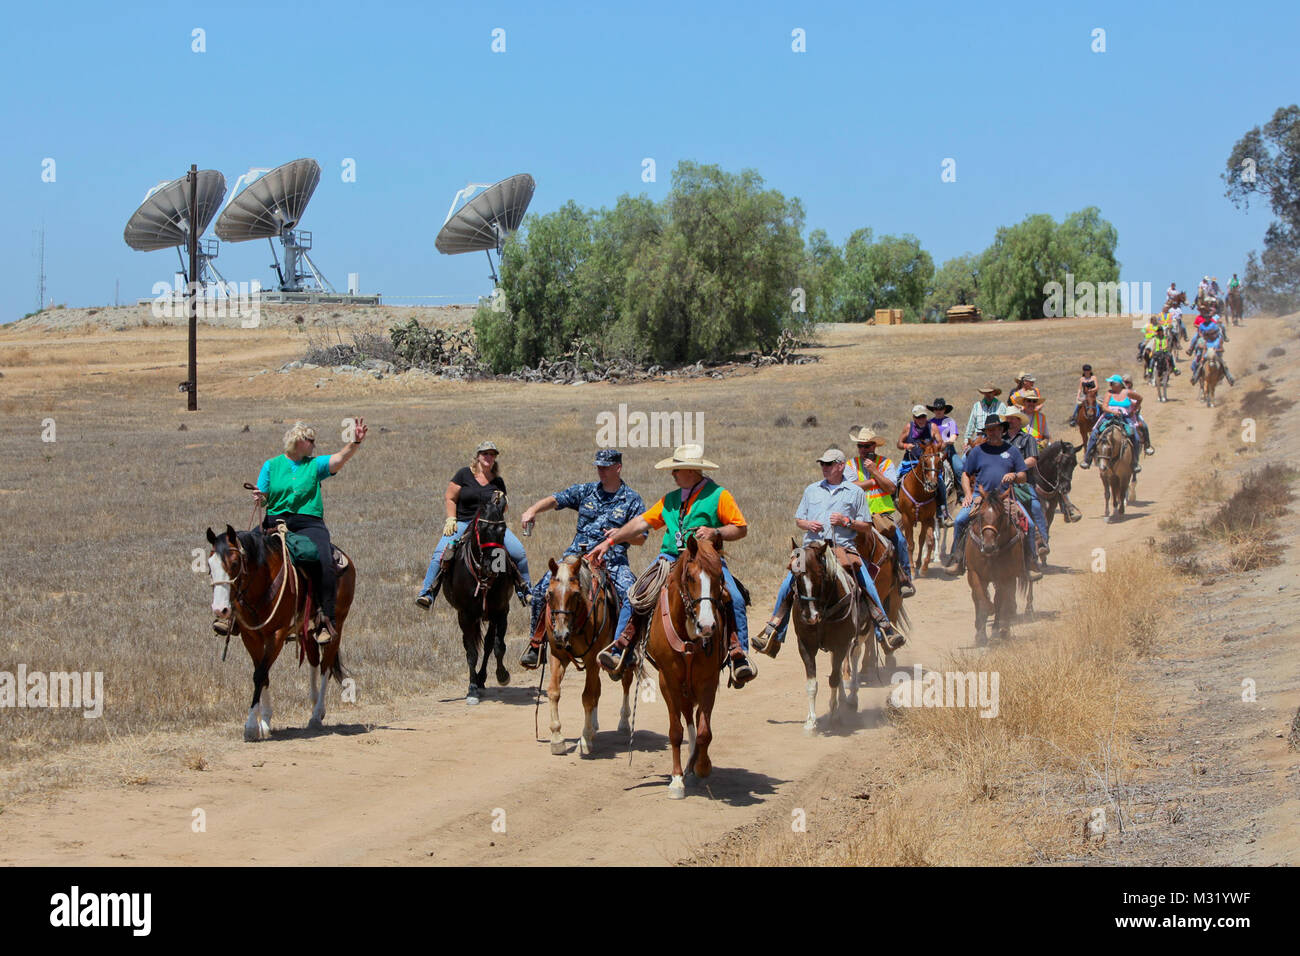 130622-N-HP195-672 NORCO, Calif. (June 22, 2013) Dozens of Norco's Saddle Sore Riders follow a dirt road toward - Stock Image